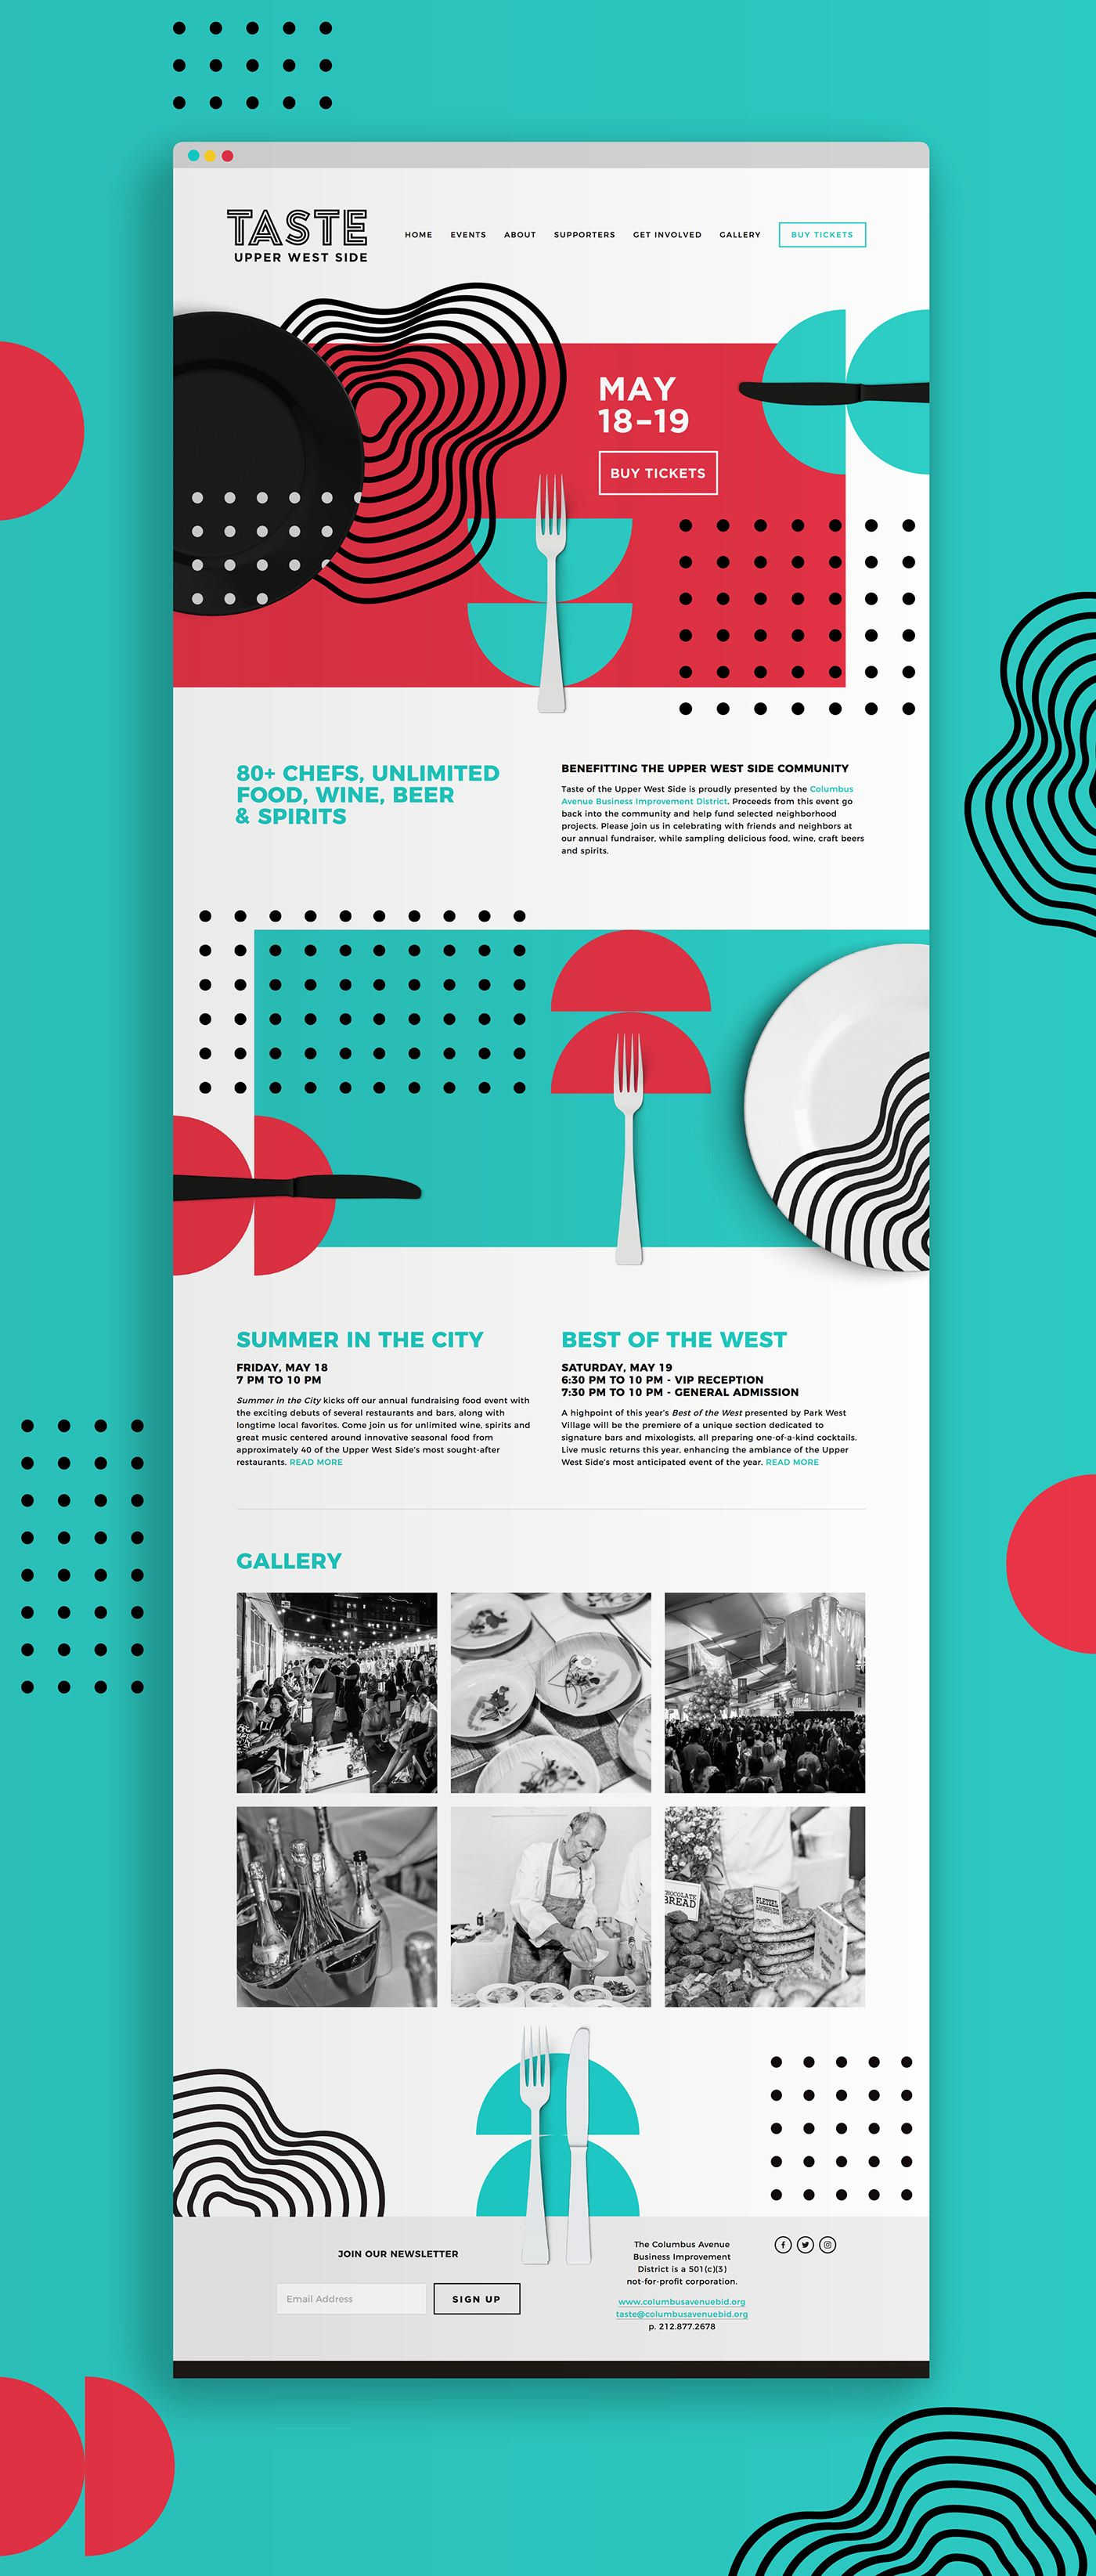 But Like Without The Forks And Spoons Just The Shapes Web Design Awards Web Design Trends Web Layout Design